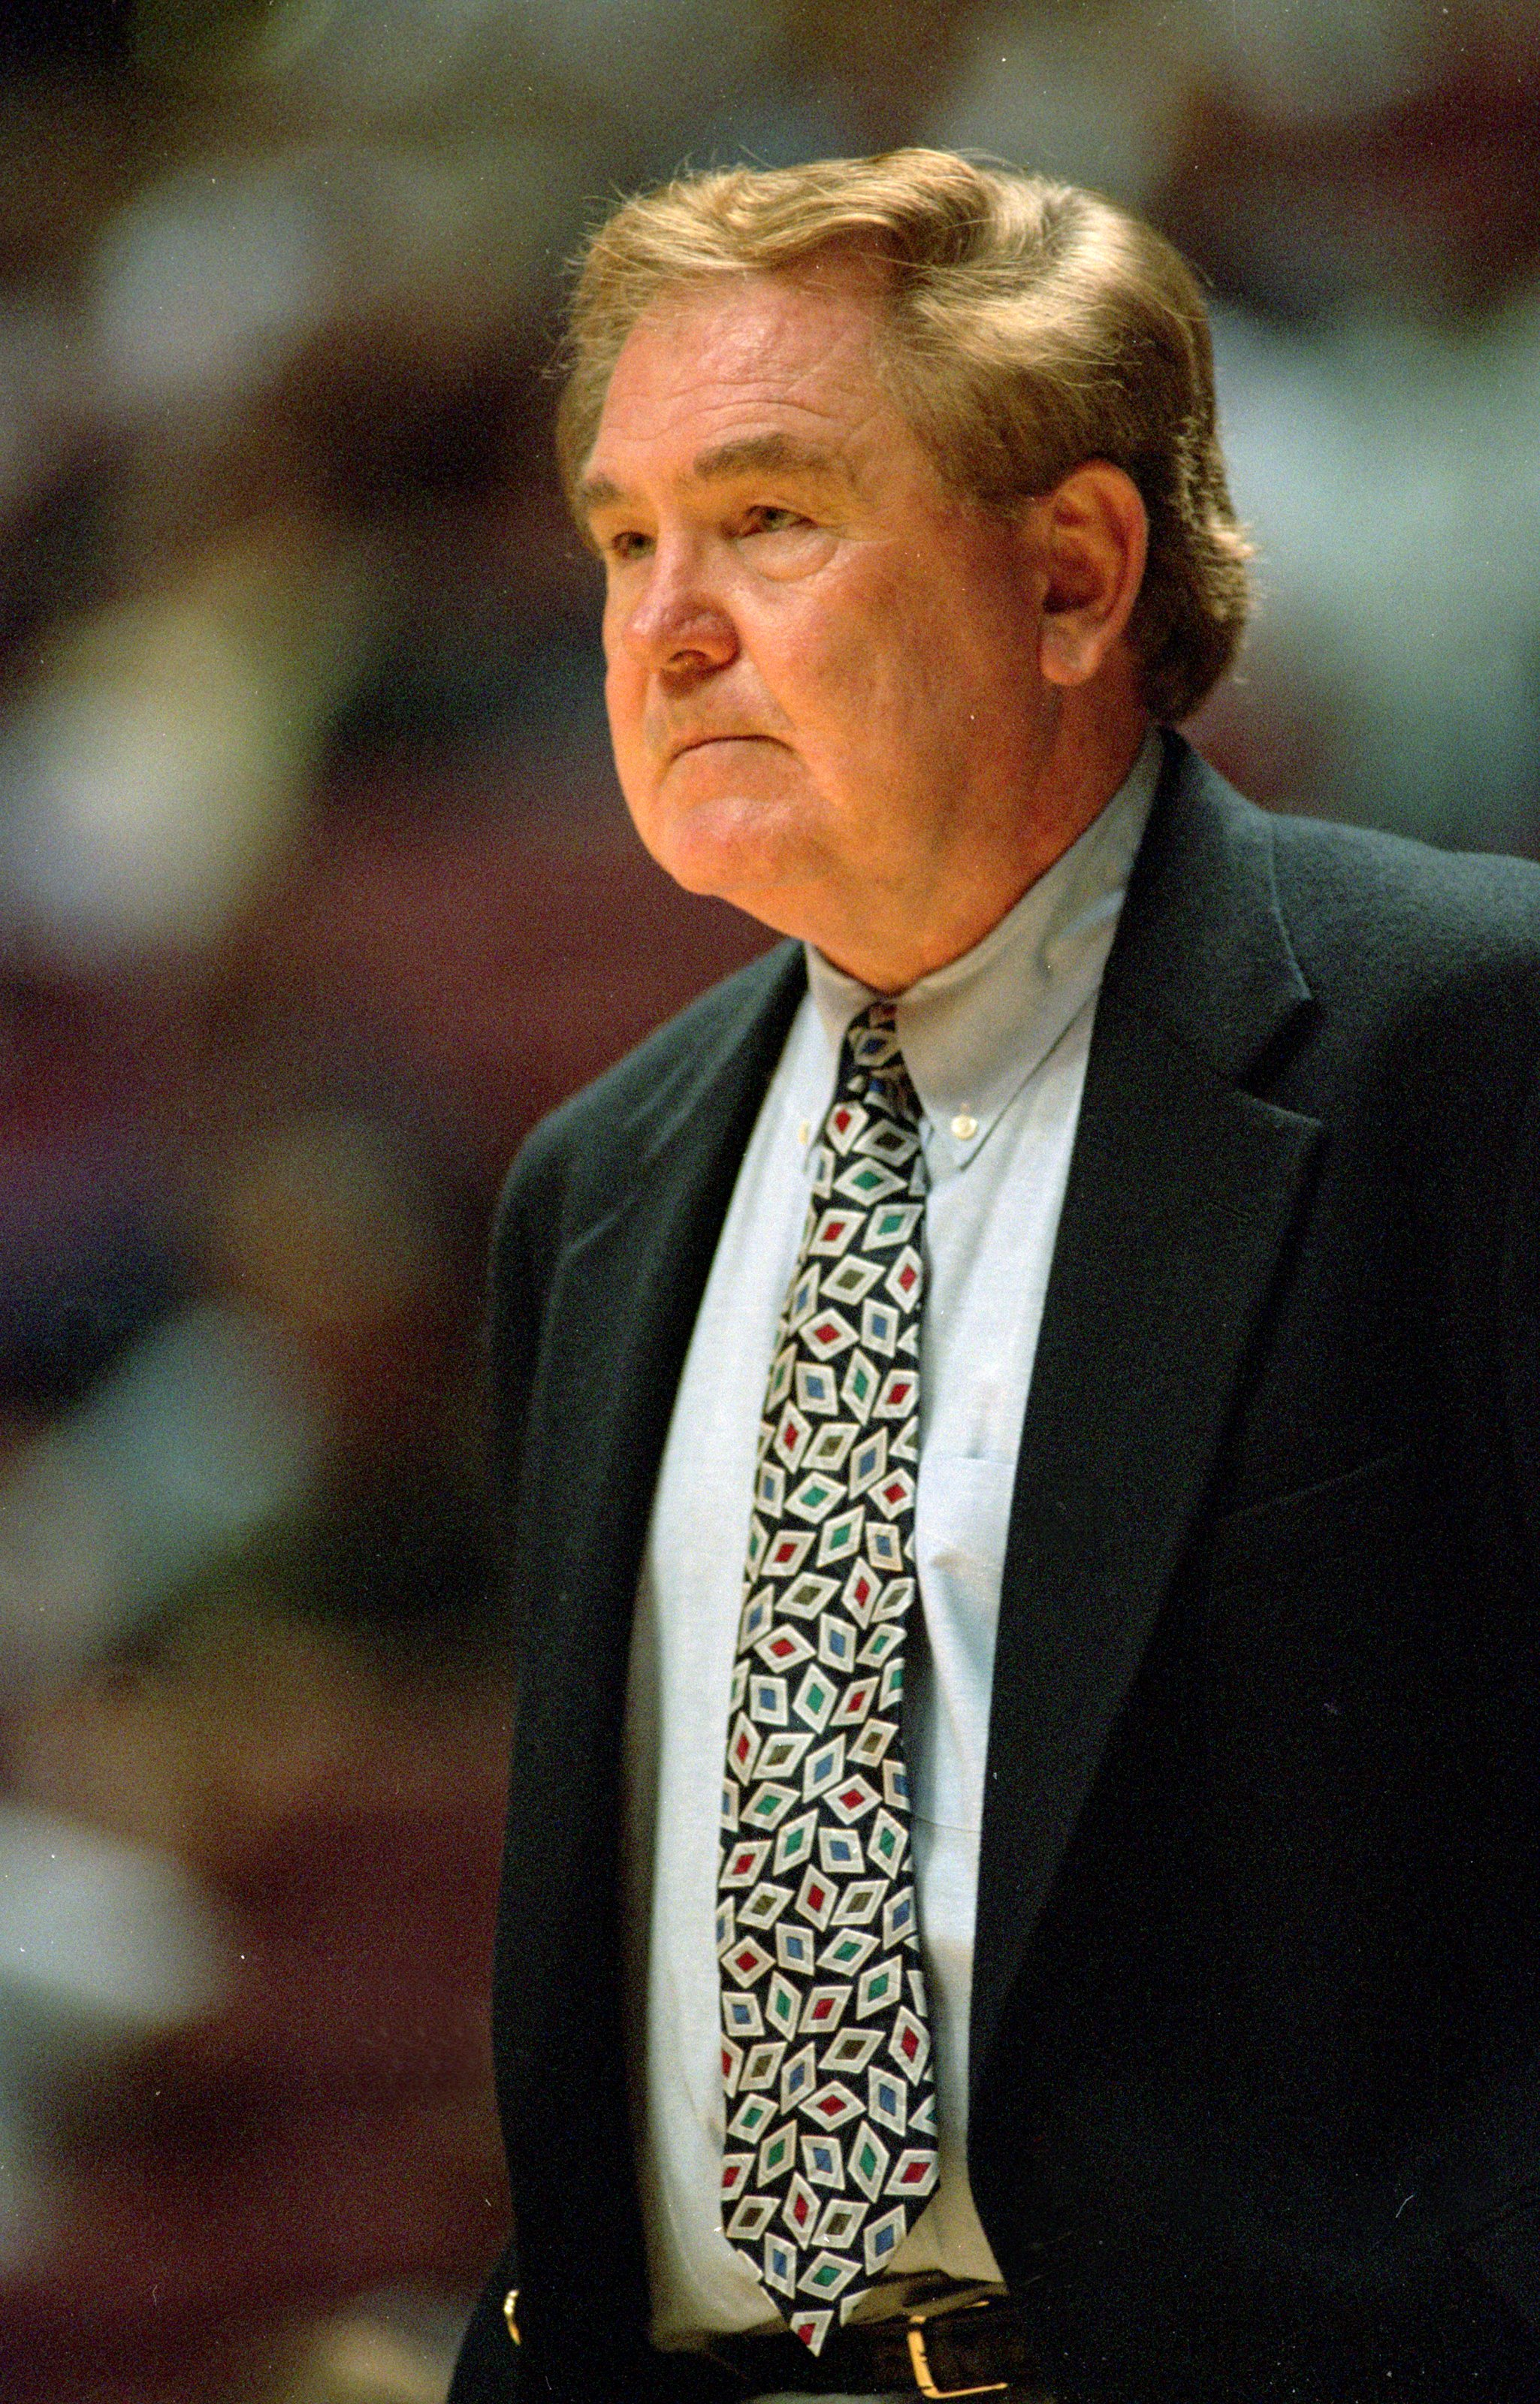 19 Oct 1999: Head coach Bill Fitch of the Los Angeles Clippers watches from the sidelines during an exhibition game against the Los Angeles Lakers at the Anaheim Pond in Anaheim, California. The Lakers defeated the Clippers 120-104.